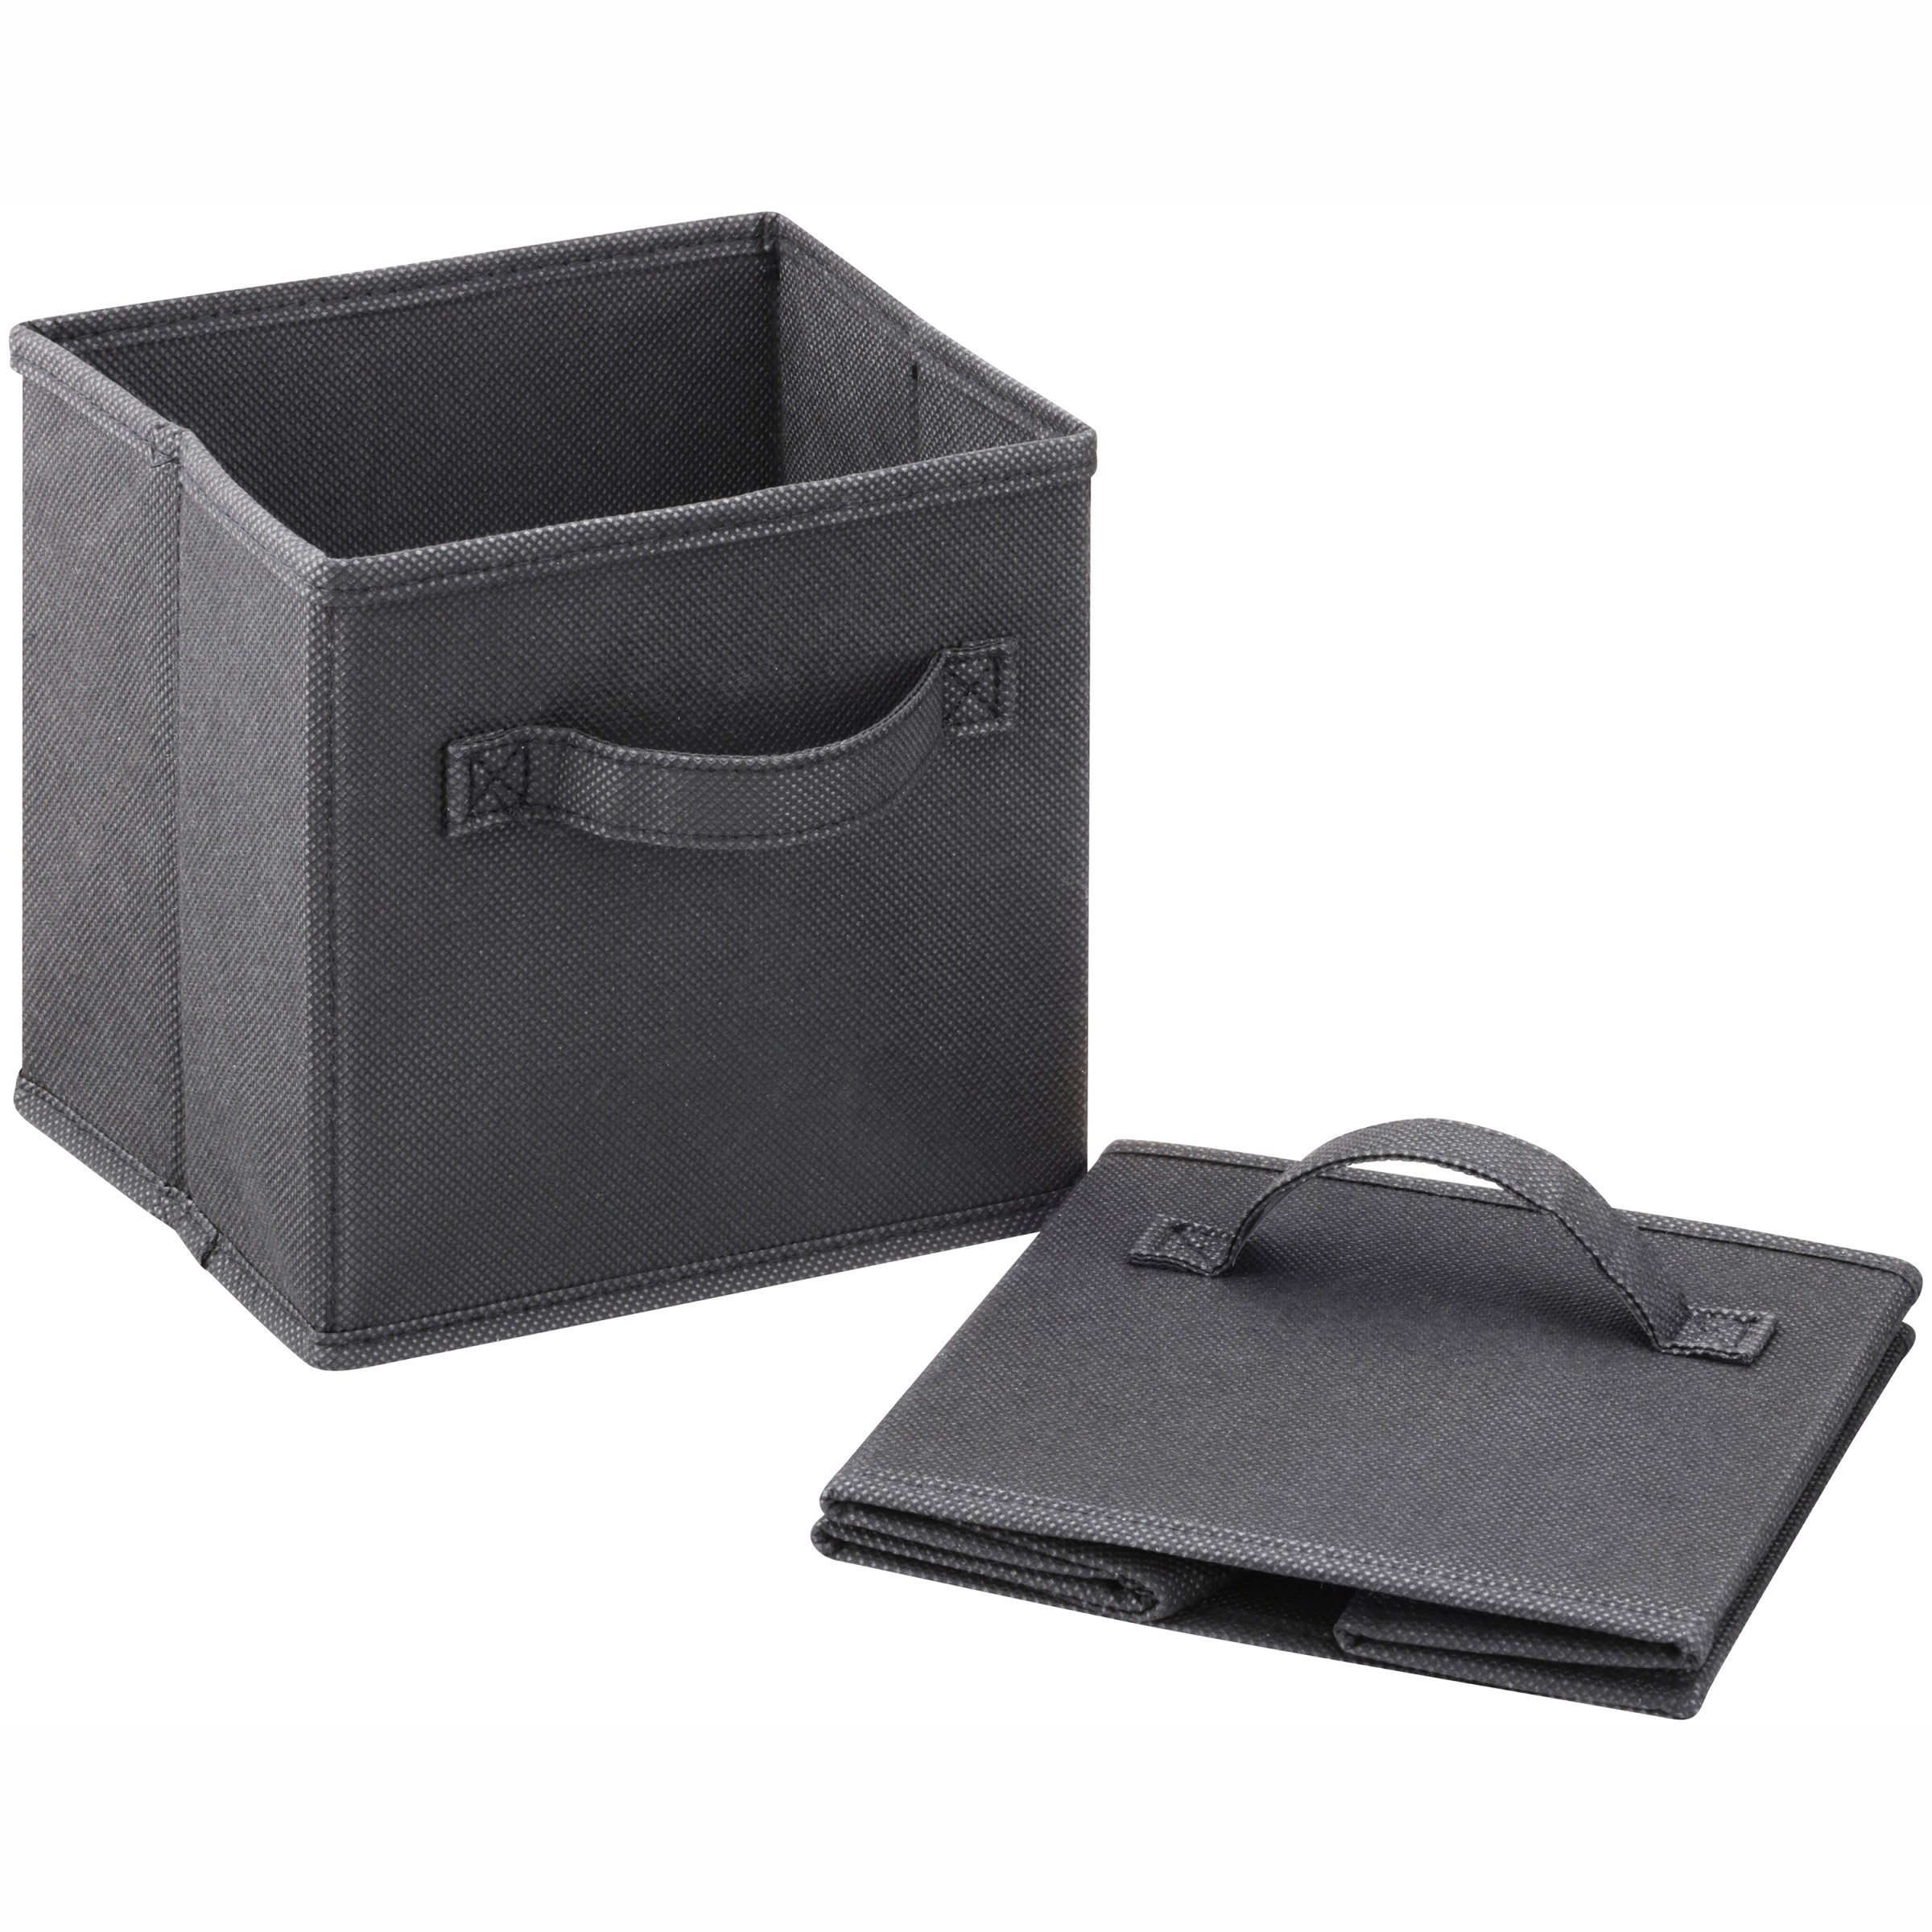 ClosetMaid® Cubeicals® Black Fabric Drawers 2 ct Pack